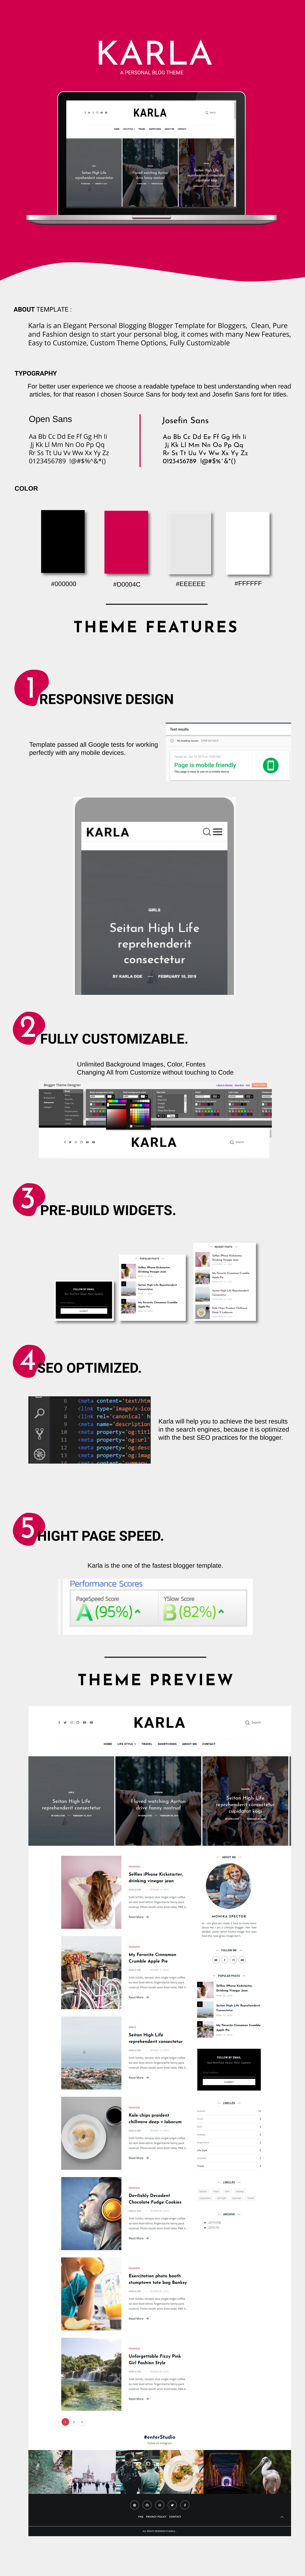 Karla - Life Style & Personal Blogger Template - 1